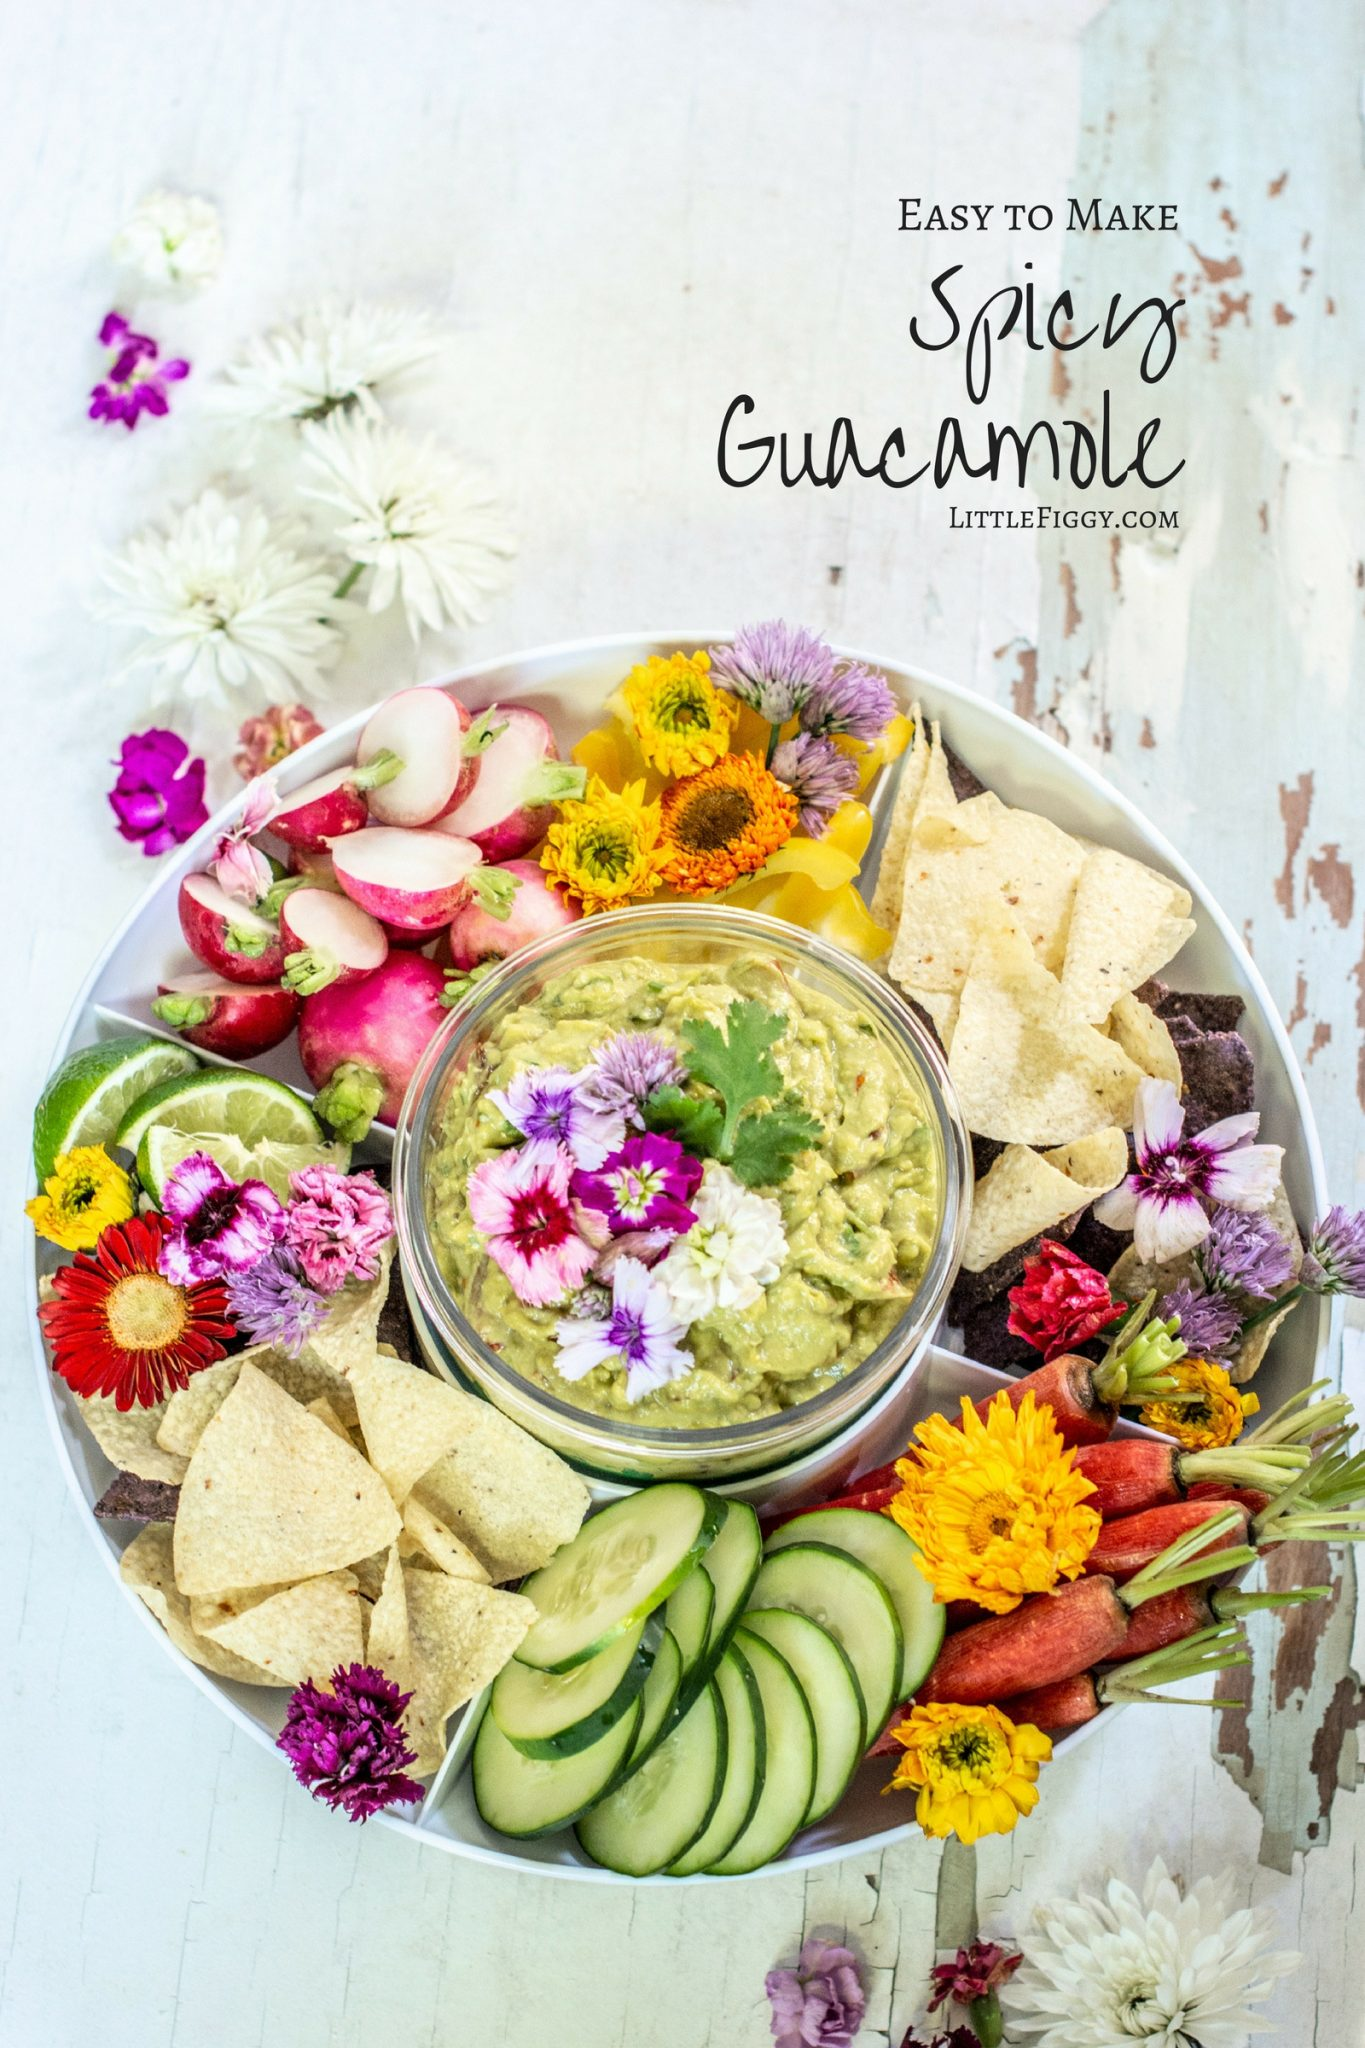 Serving dish with vegetables and spicy guacamole nested in middle of dish, decorated with pink and white flowers.